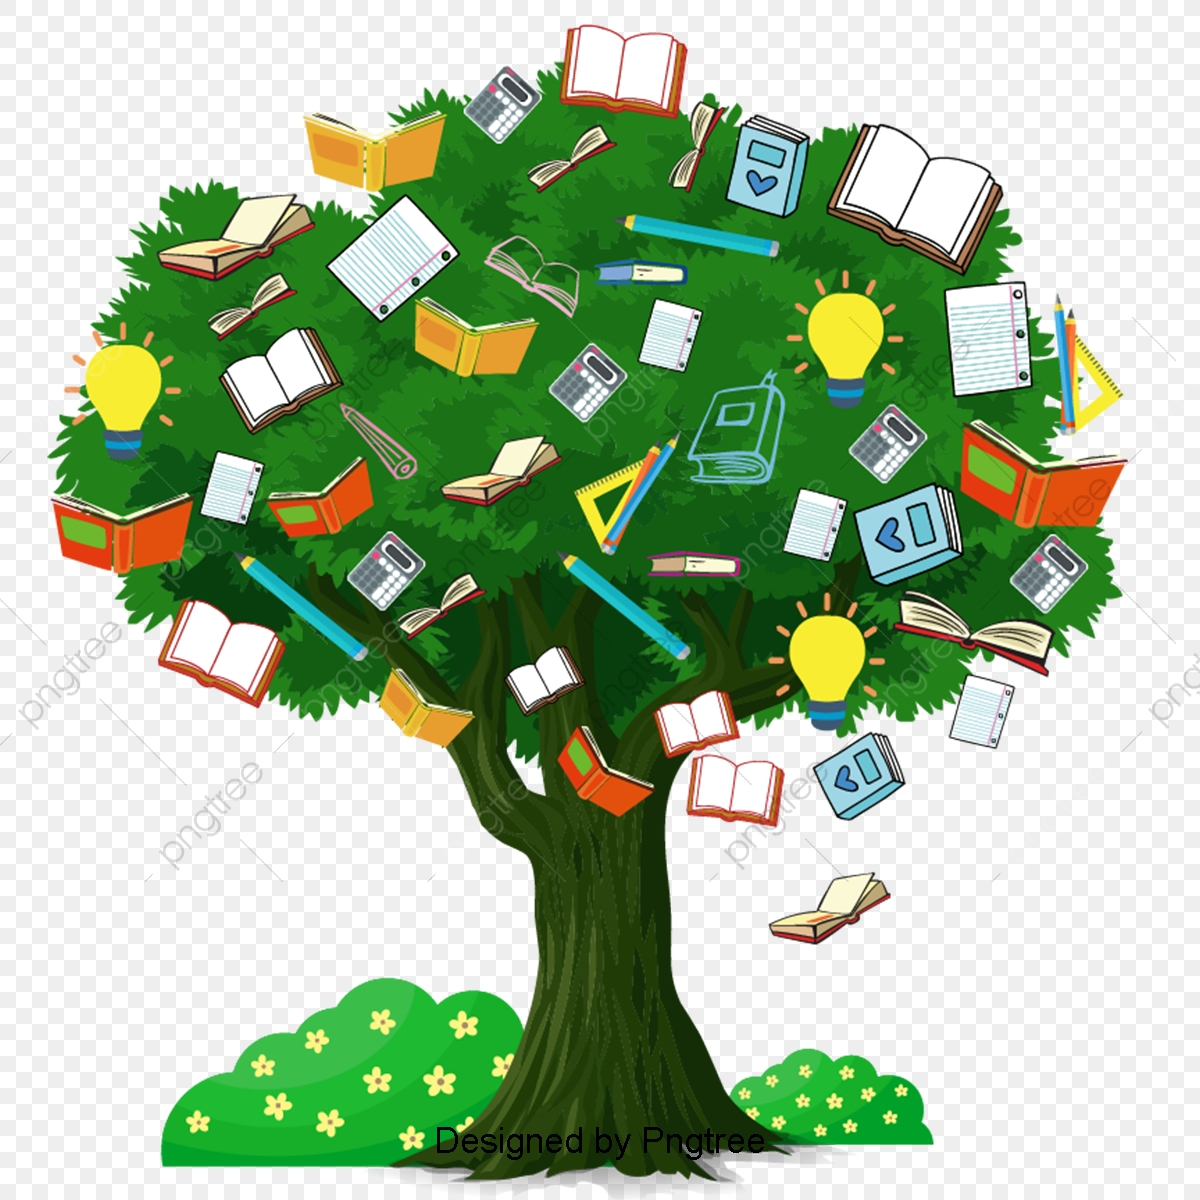 The Tree Of S Imagination Library Education Trees Green, Education.